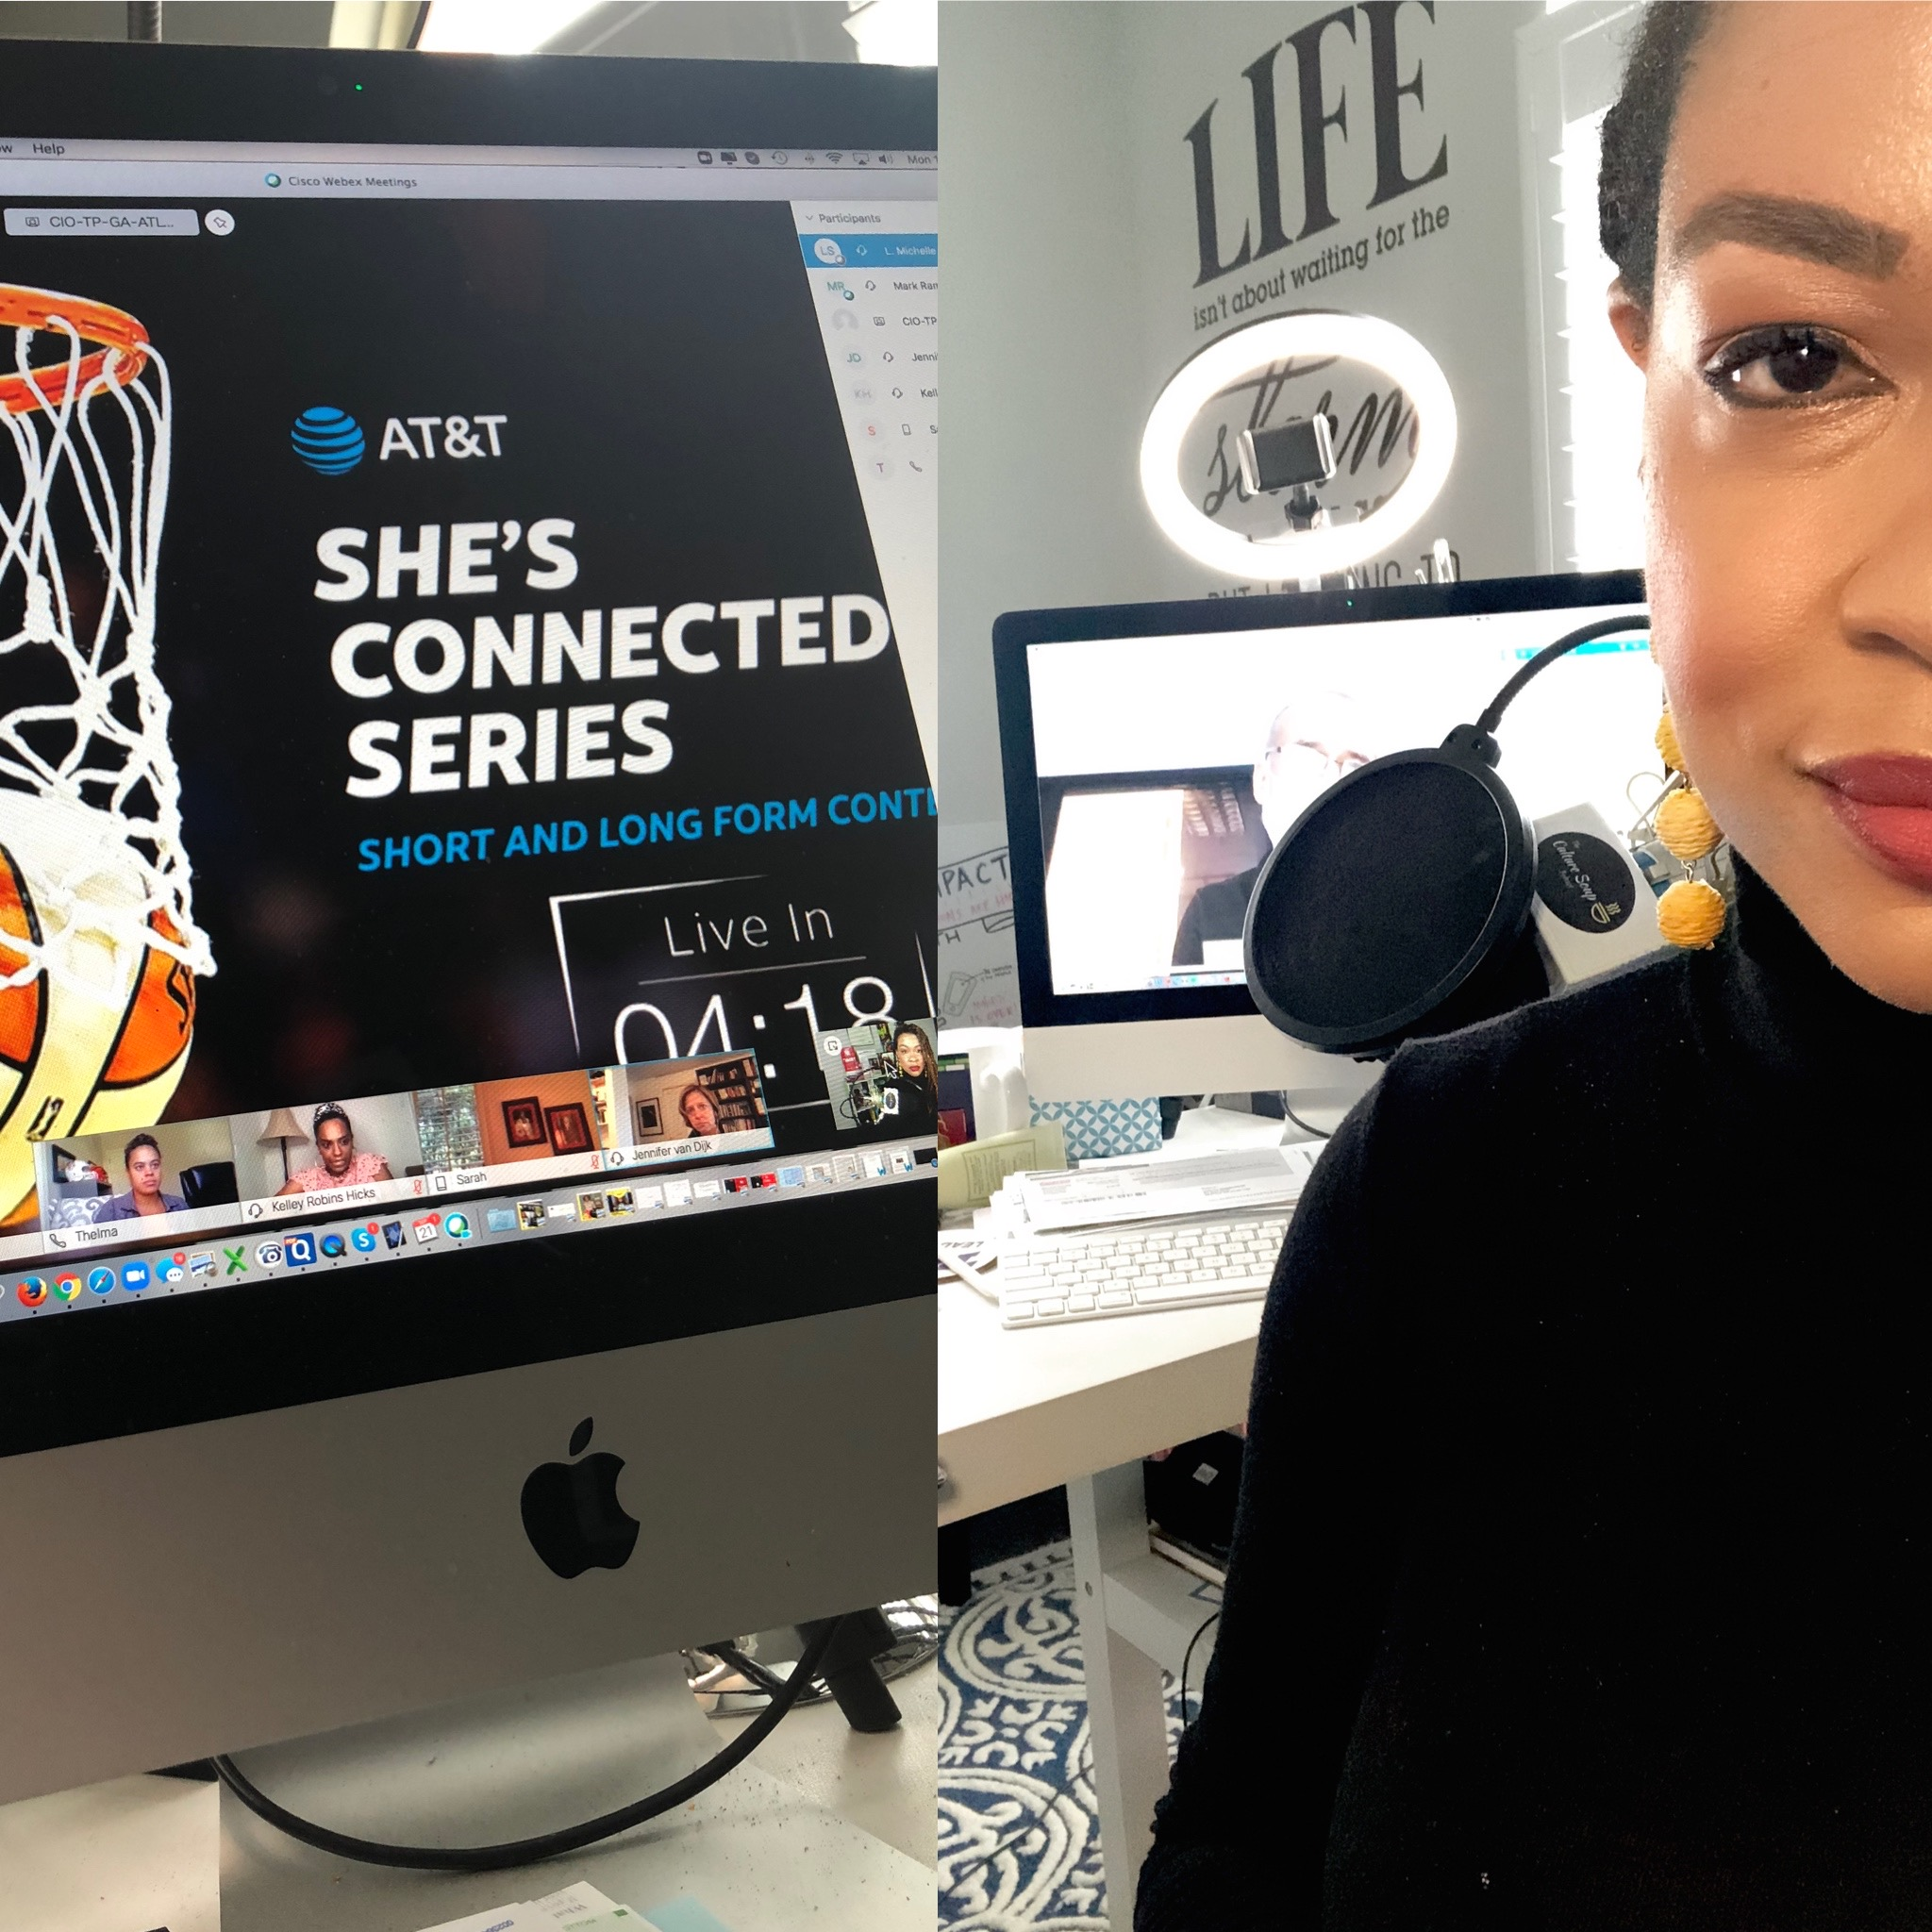 Game time!  AT&T + WNBA Changemakers: She's Connected highlights